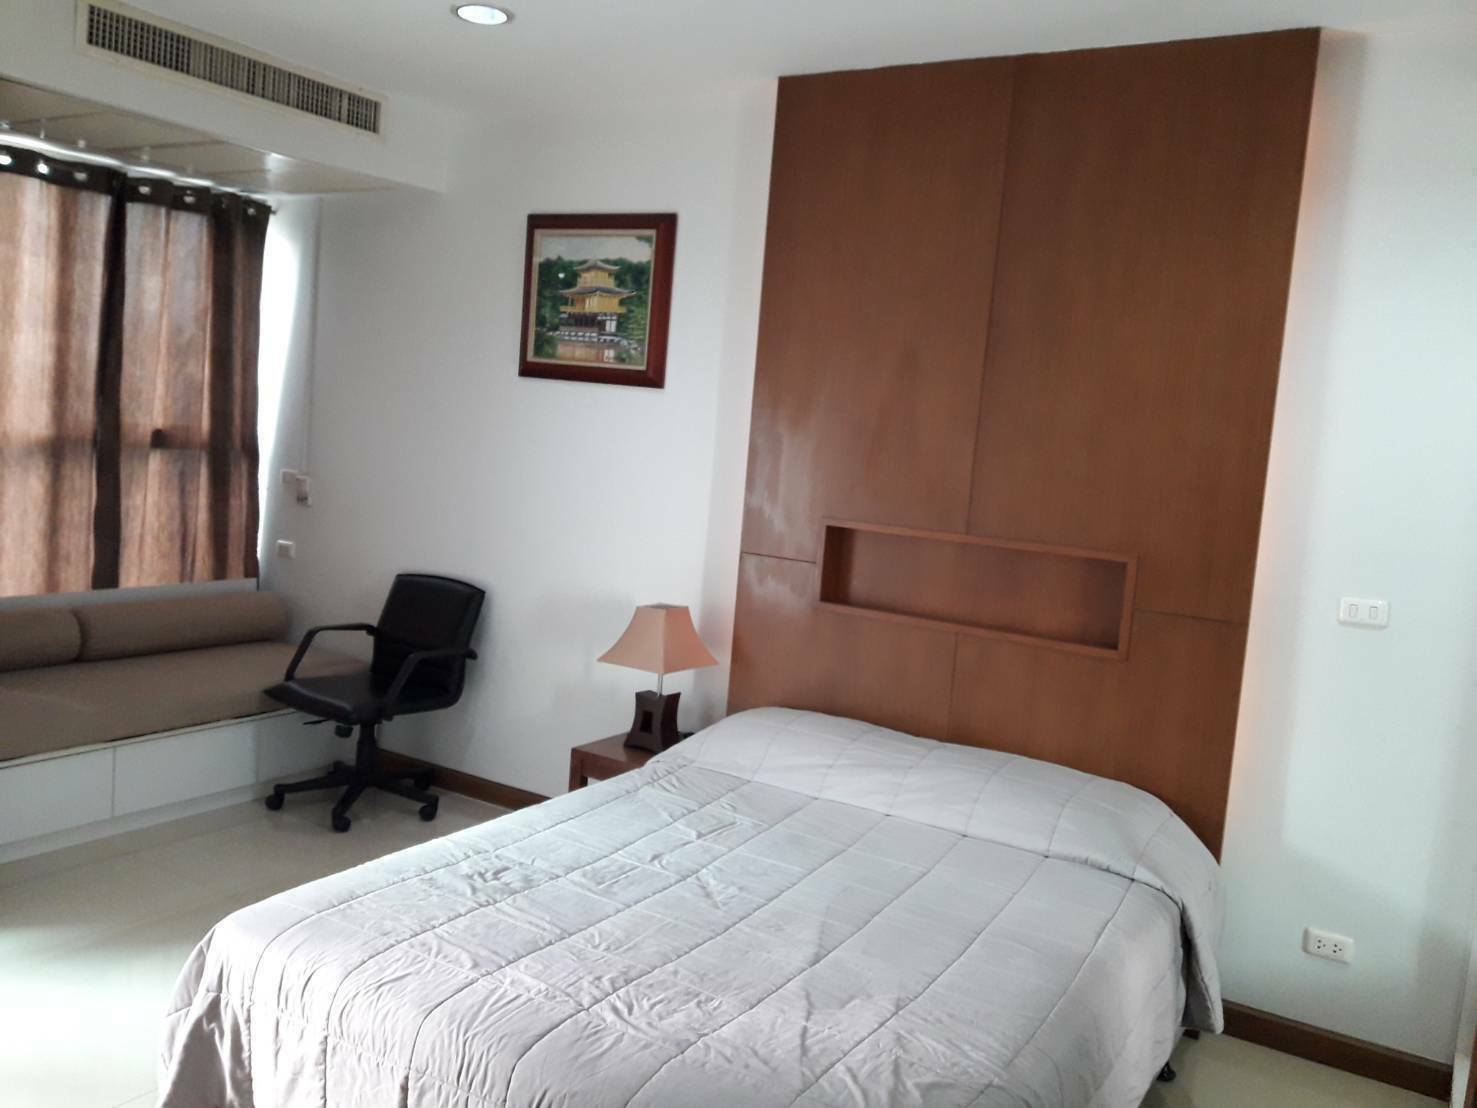 The Address Siam-Ratchathewi for Rent – BTS Ratchathewi 200 meters – Unit 40 Sq.m.